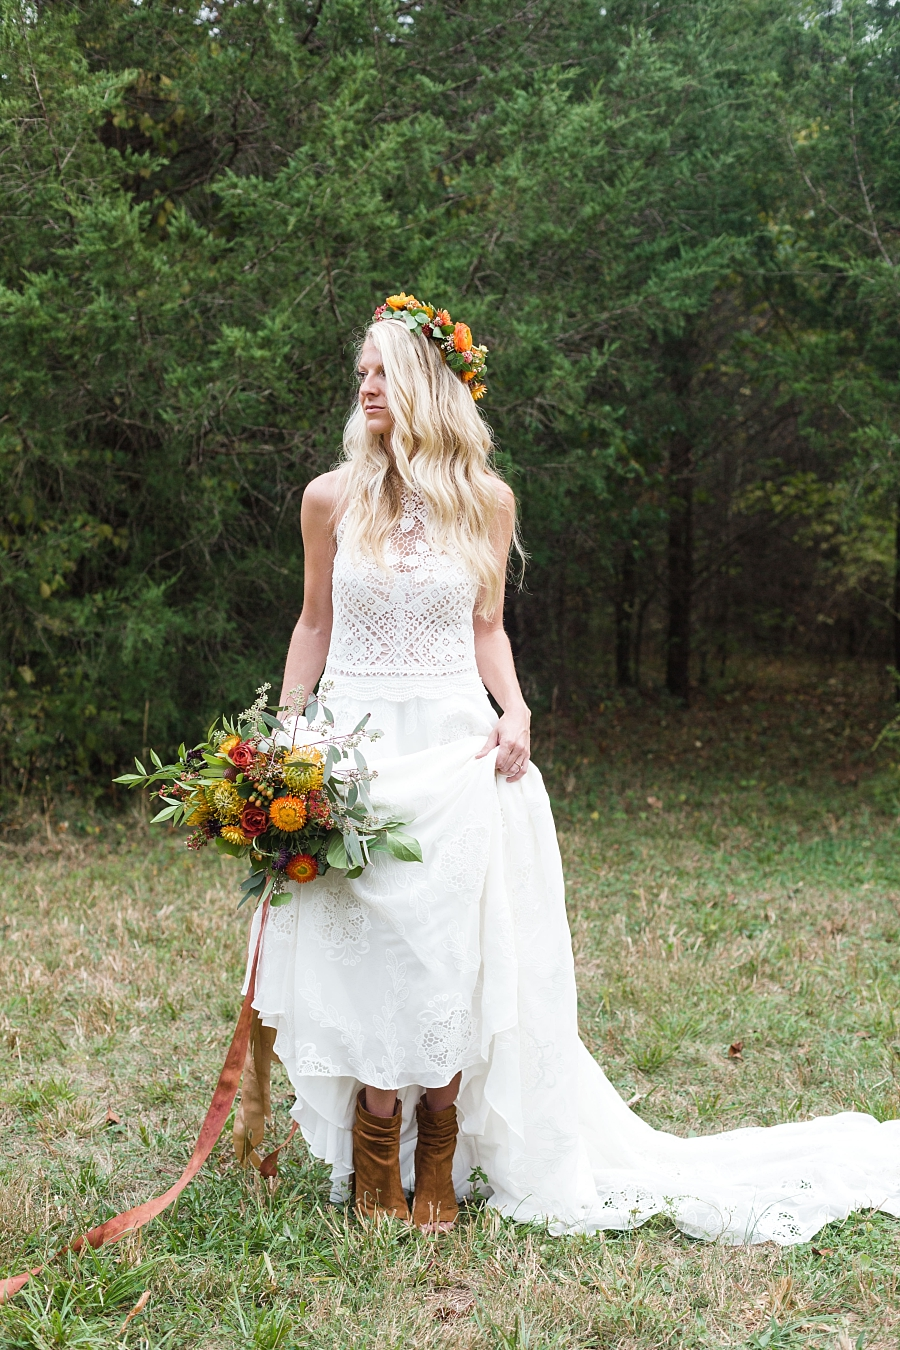 Stacy-Anderson-Photography-Cedarwood-Weddings-Nashville-Destination-Wedding-Photographer_0063.jpg